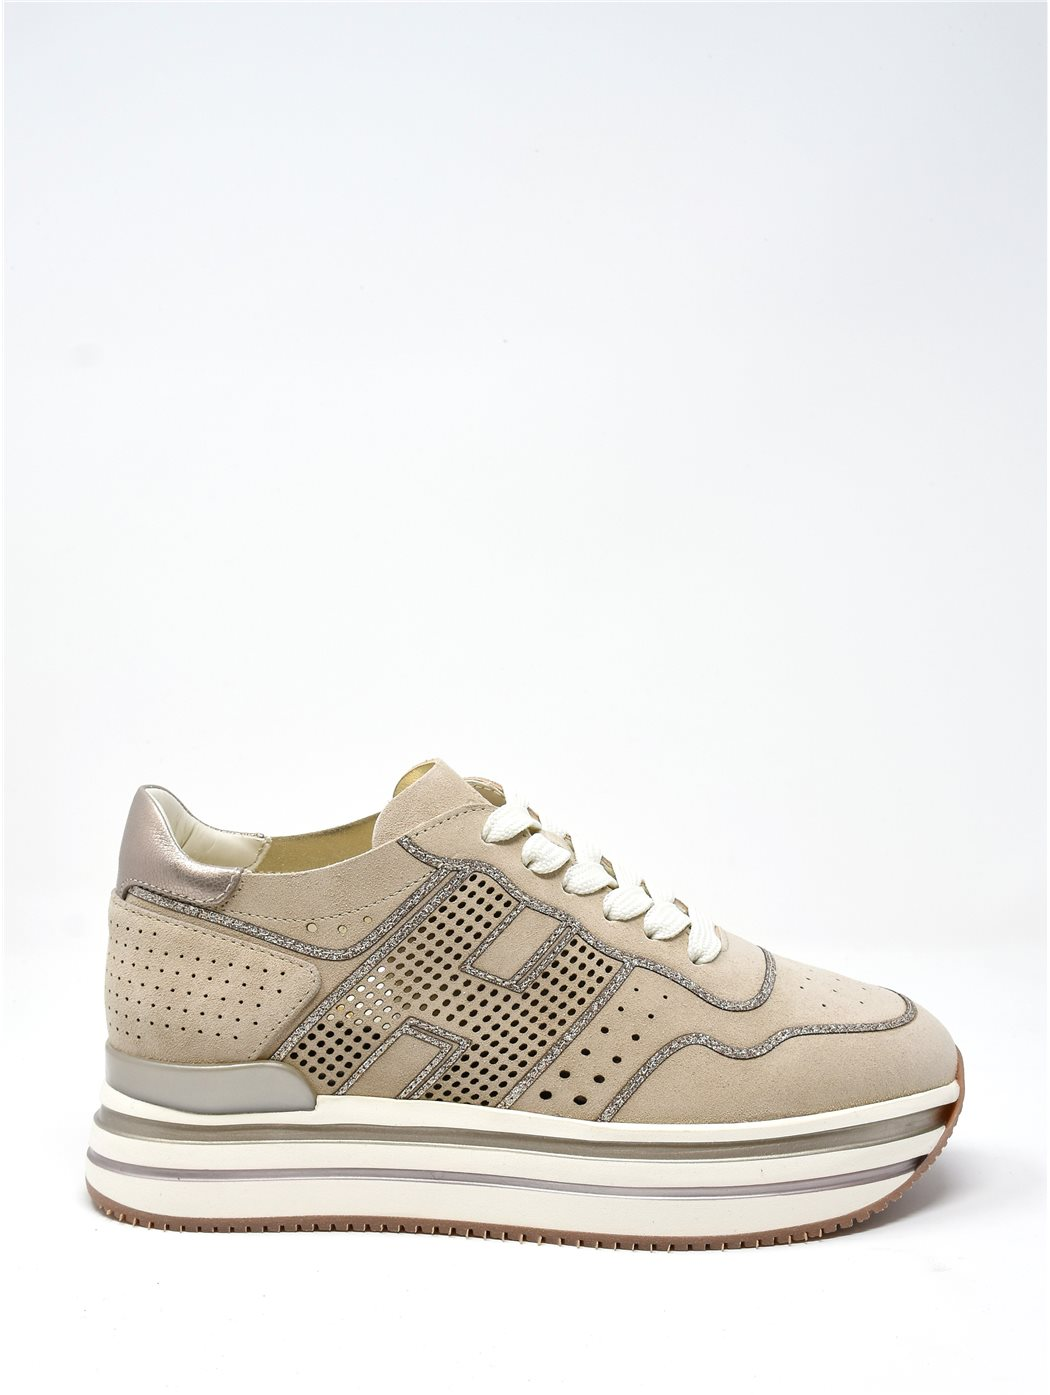 HOGAN HXW4830 0QQW SNEAKERS